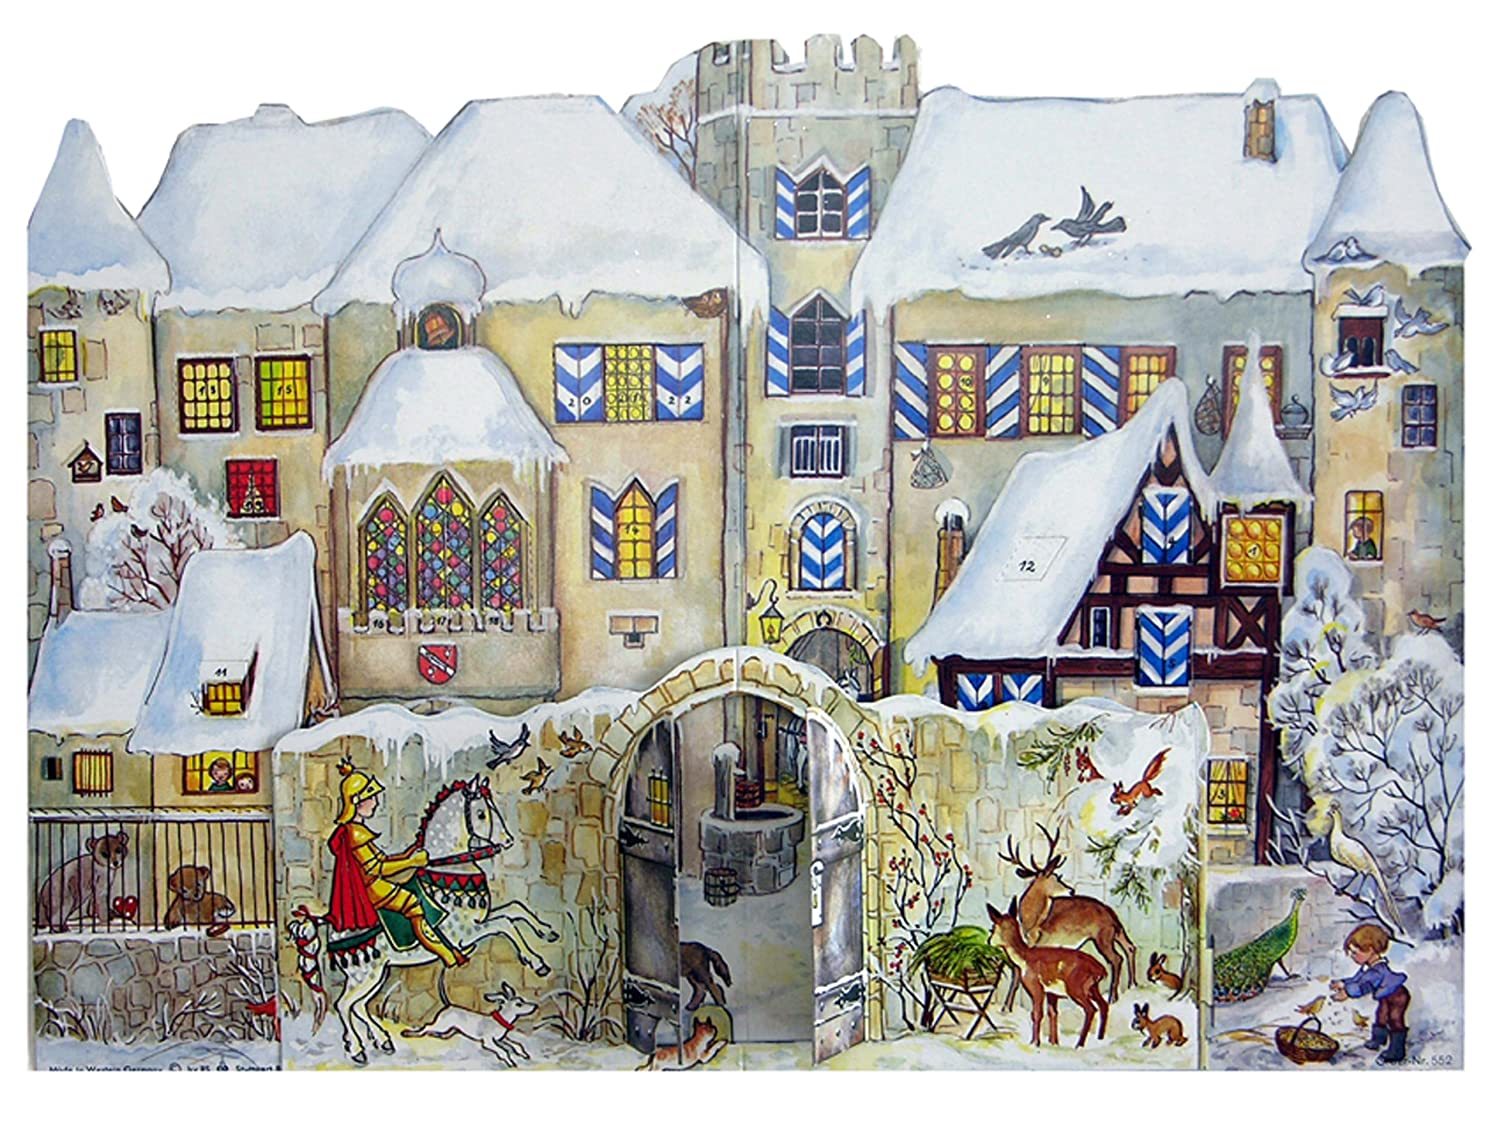 Sellmer 3-D Castle Advent Calendar Richard Sellmer Verlag 552